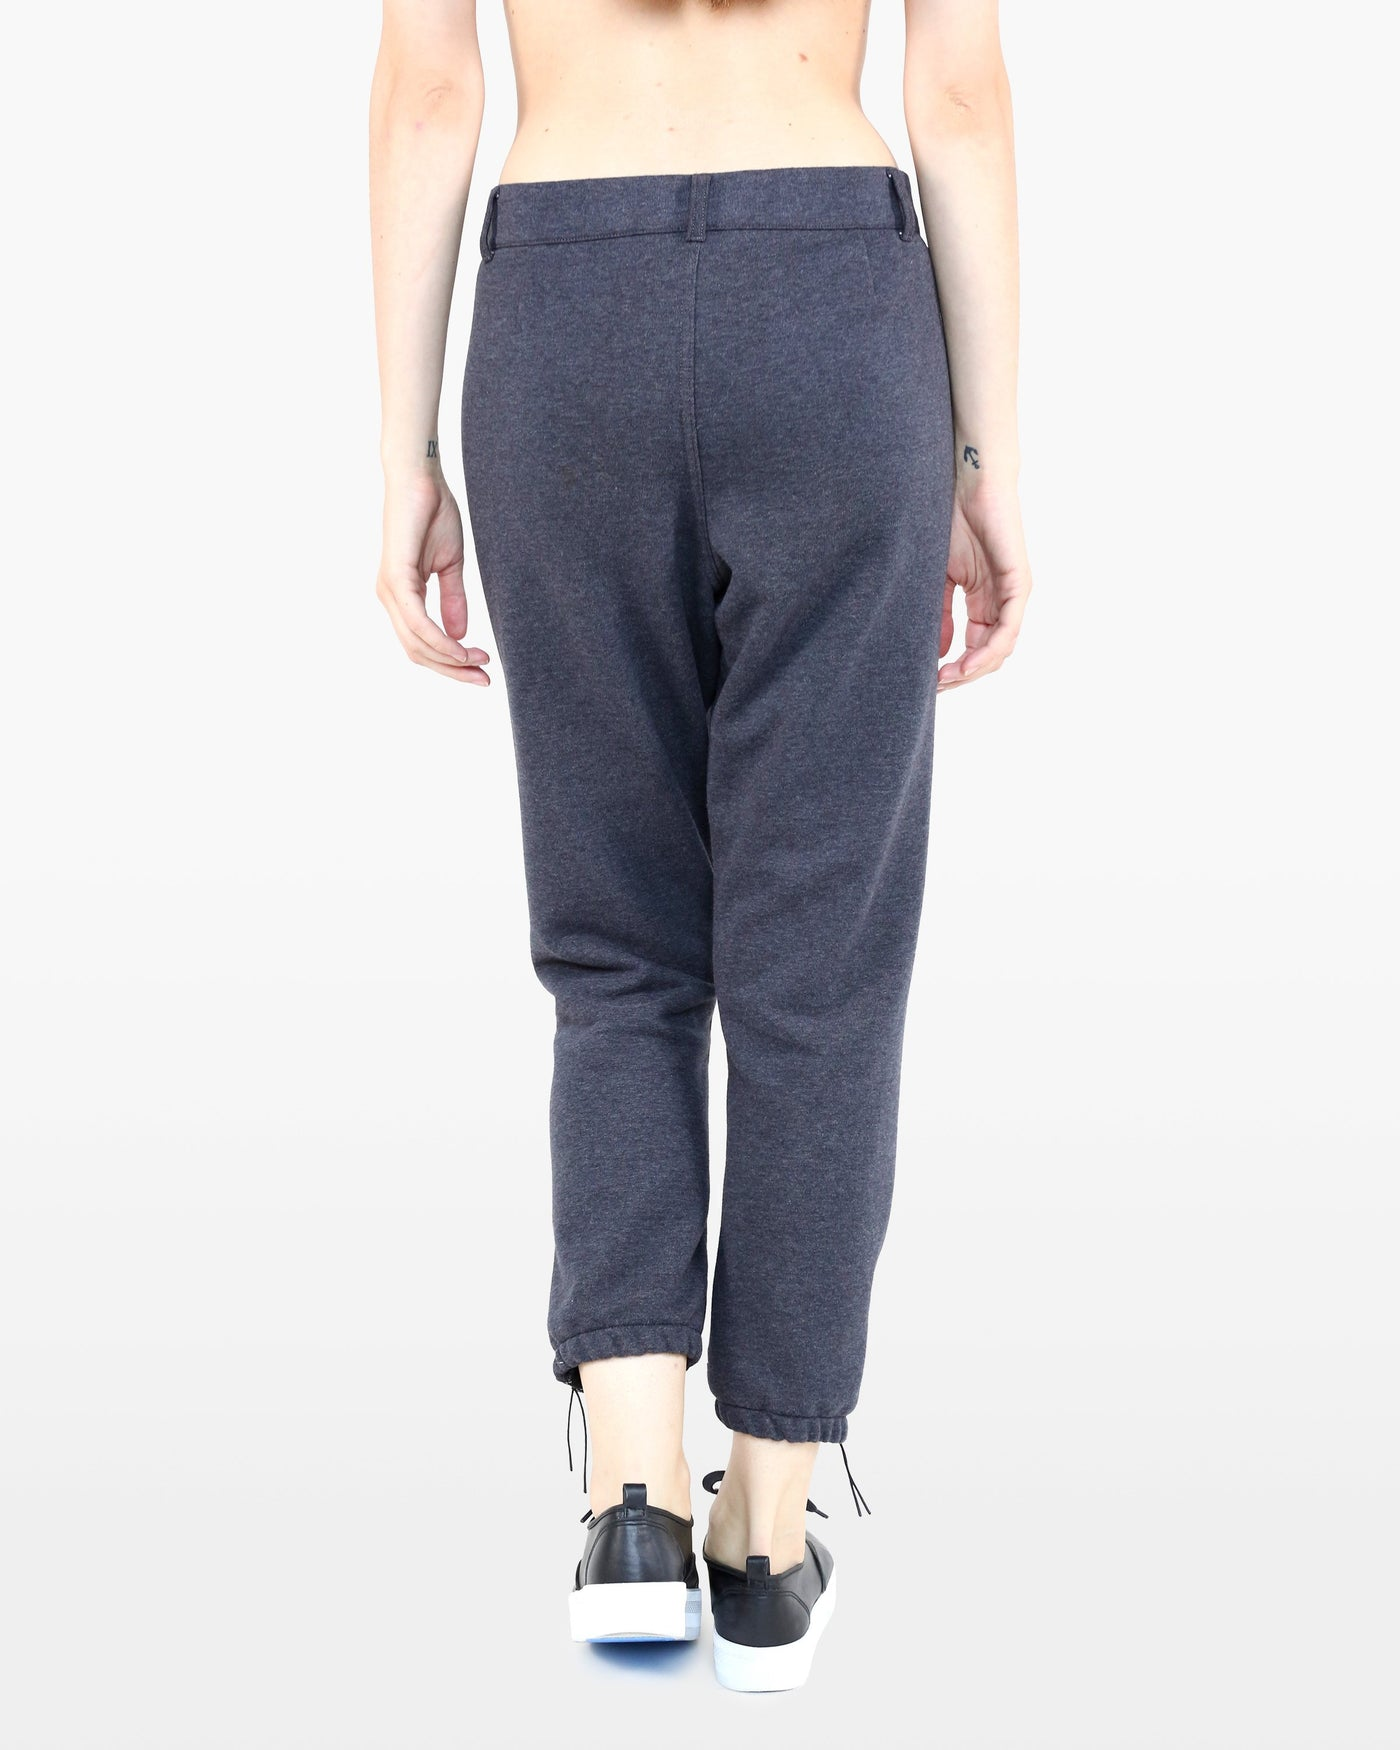 Lovelace Pant DDT in charcoal